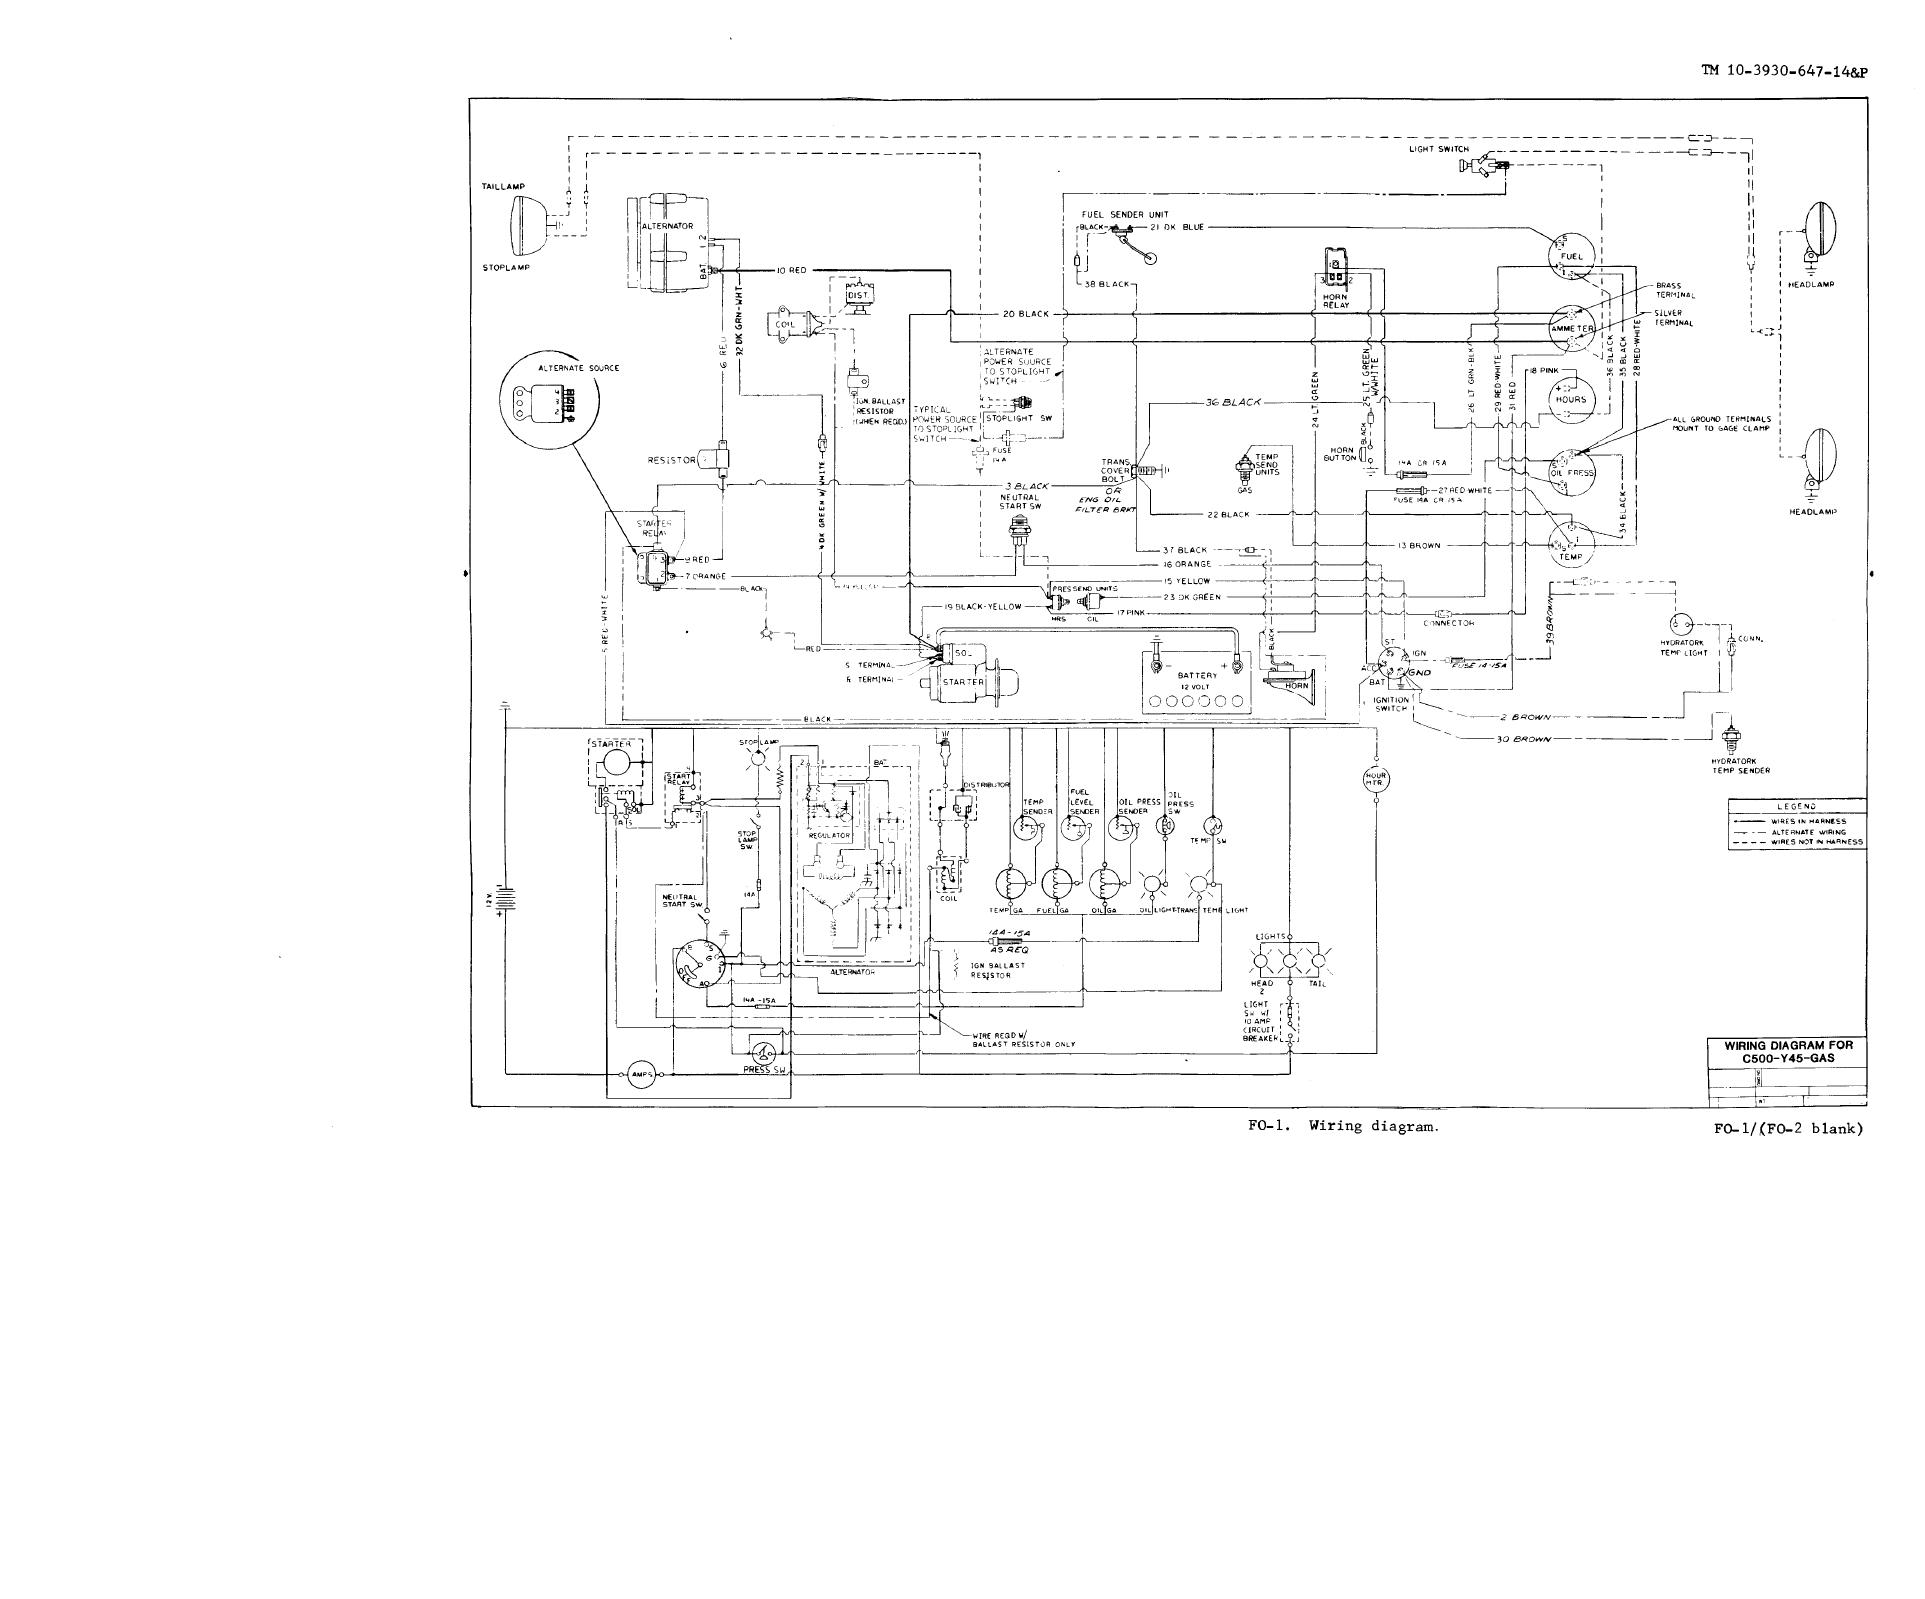 Stunning clark forklift wiring diagram contemporary everything you